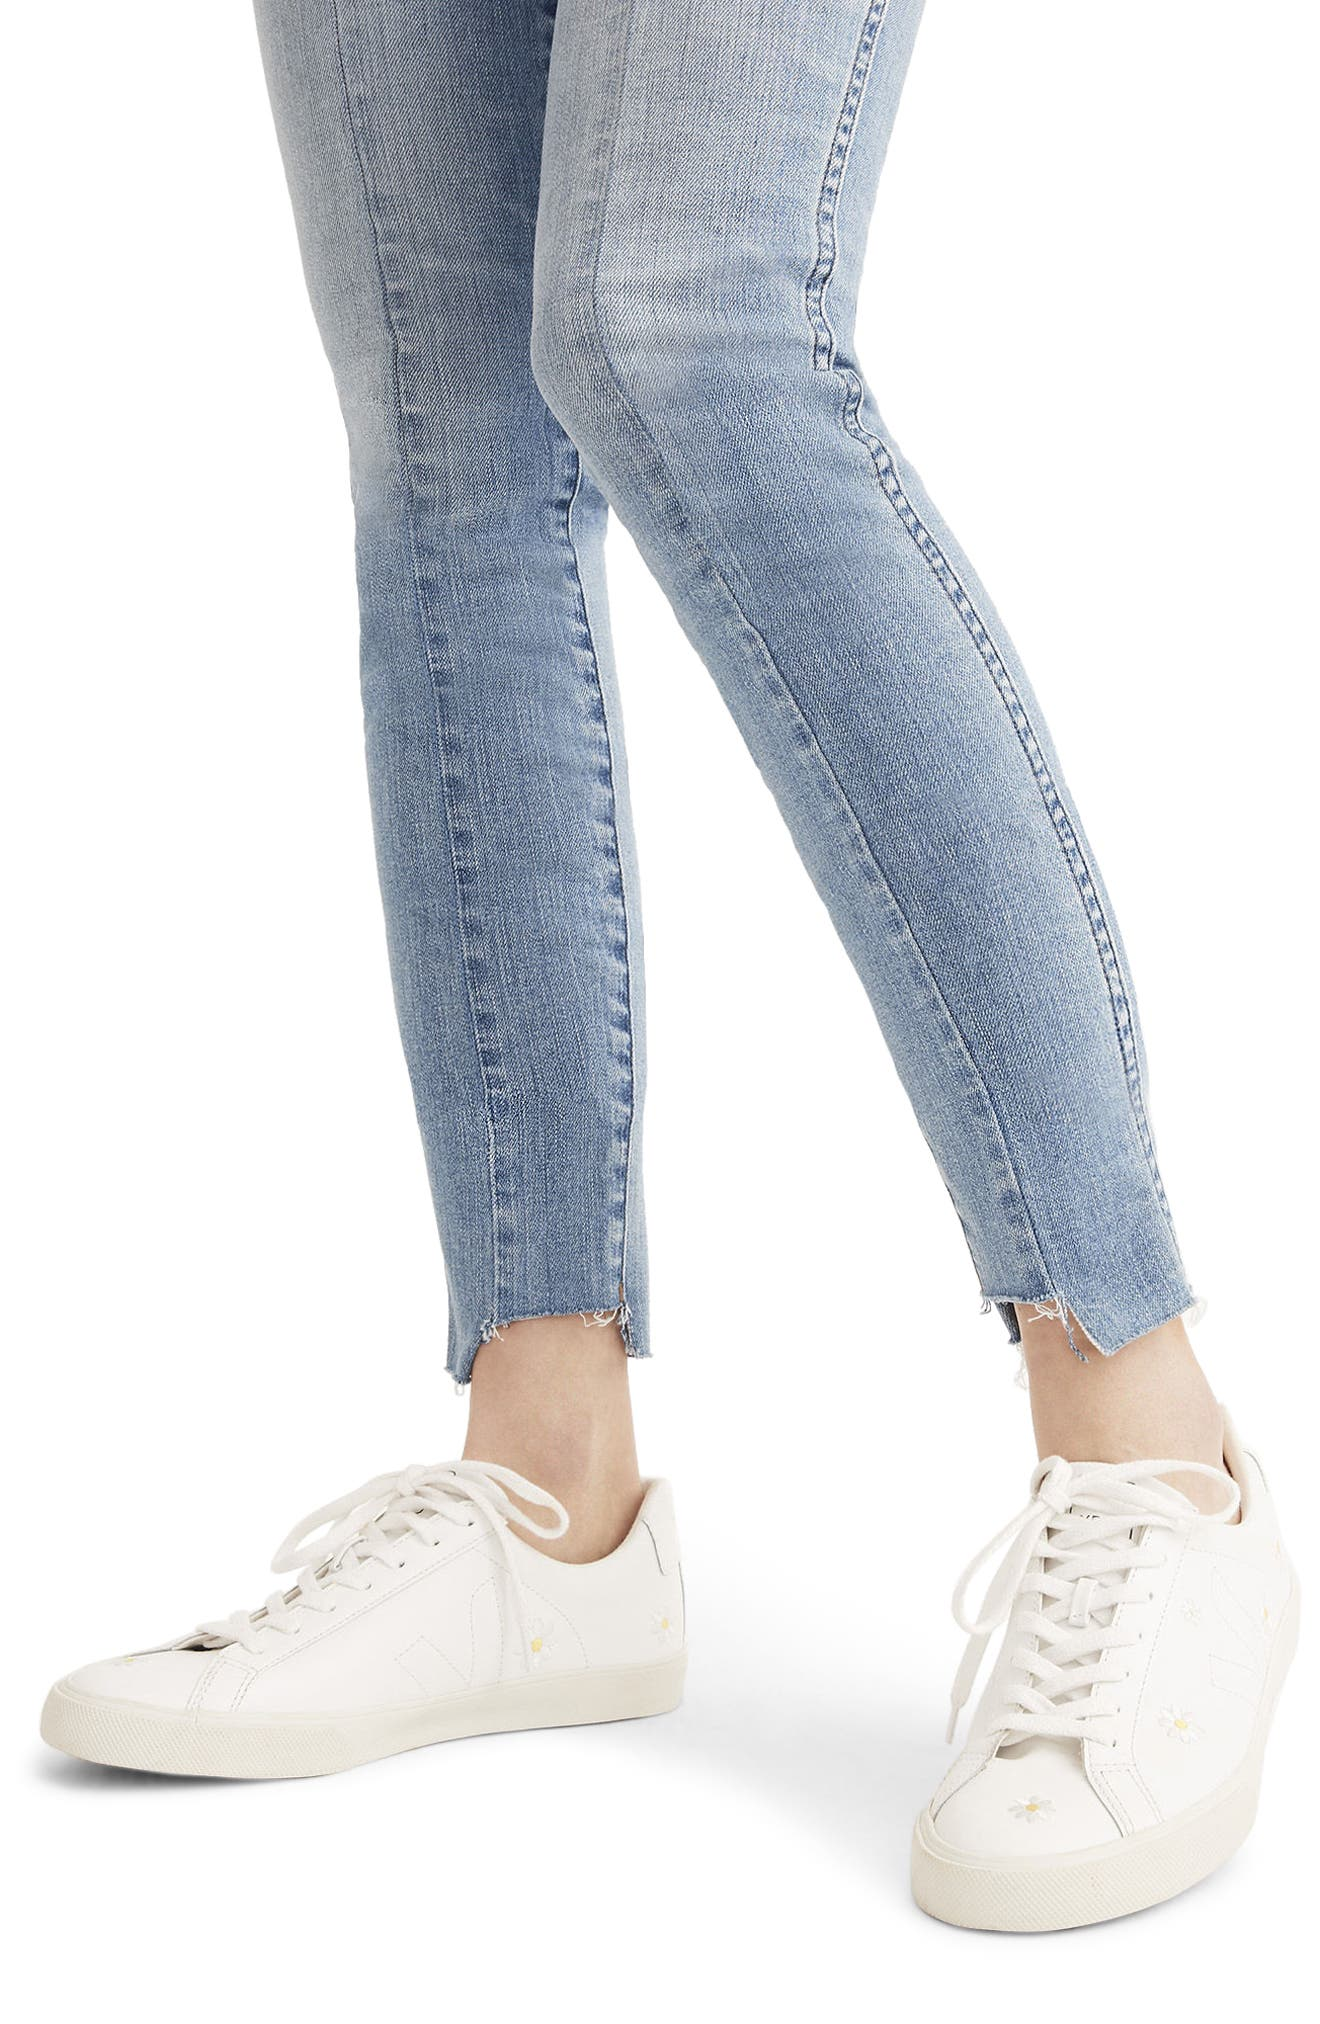 MADEWELL,                             9-Inch High Waist Seamed Step-Hem Edition Skinny Jeans,                             Alternate thumbnail 6, color,                             400